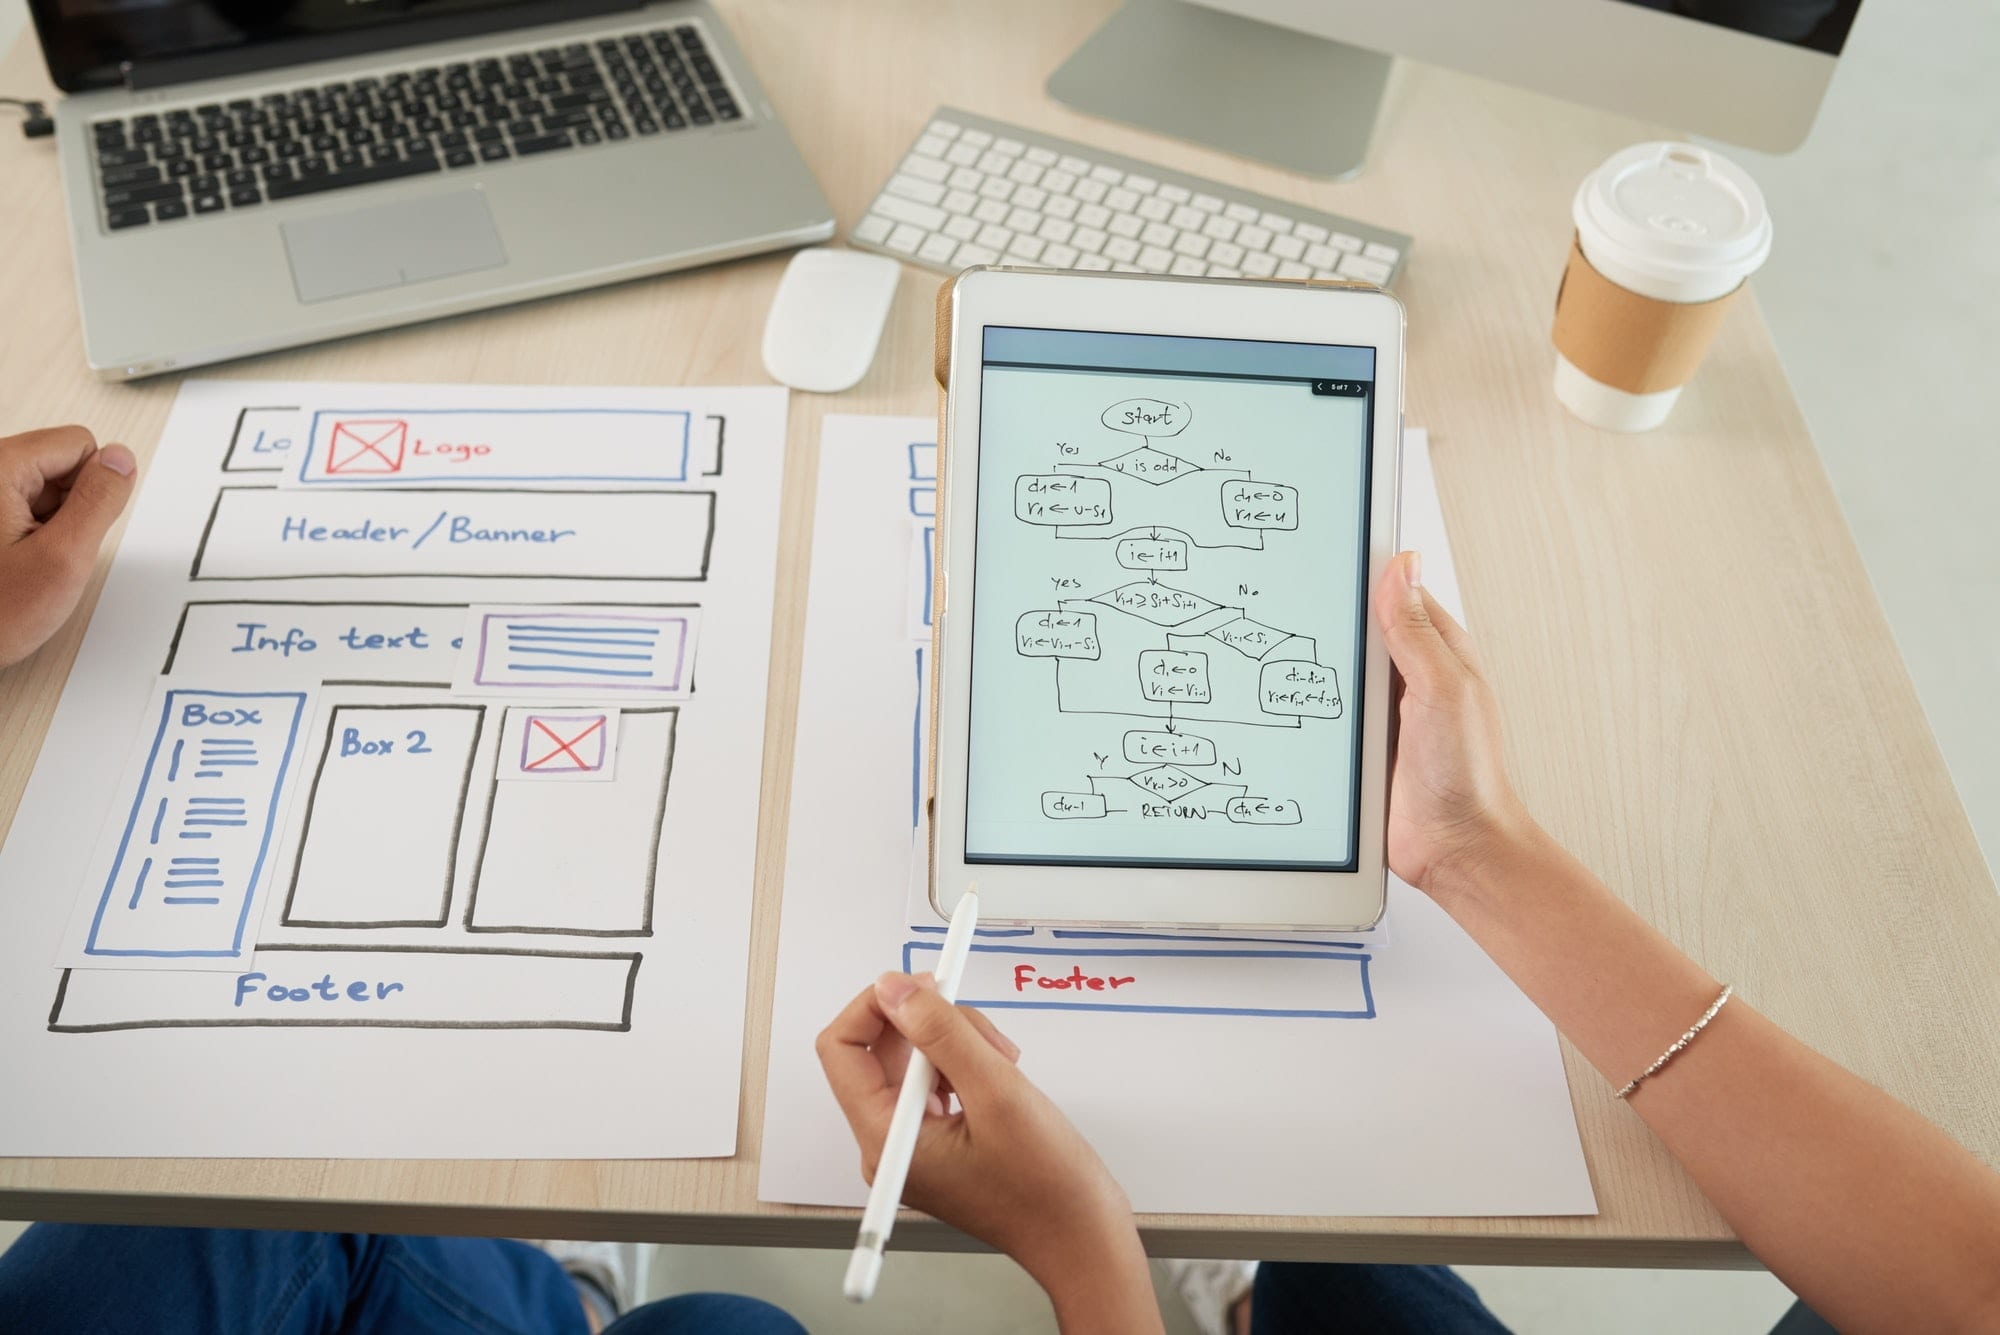 Ways to Design a Website for a Professional Woodworking Business